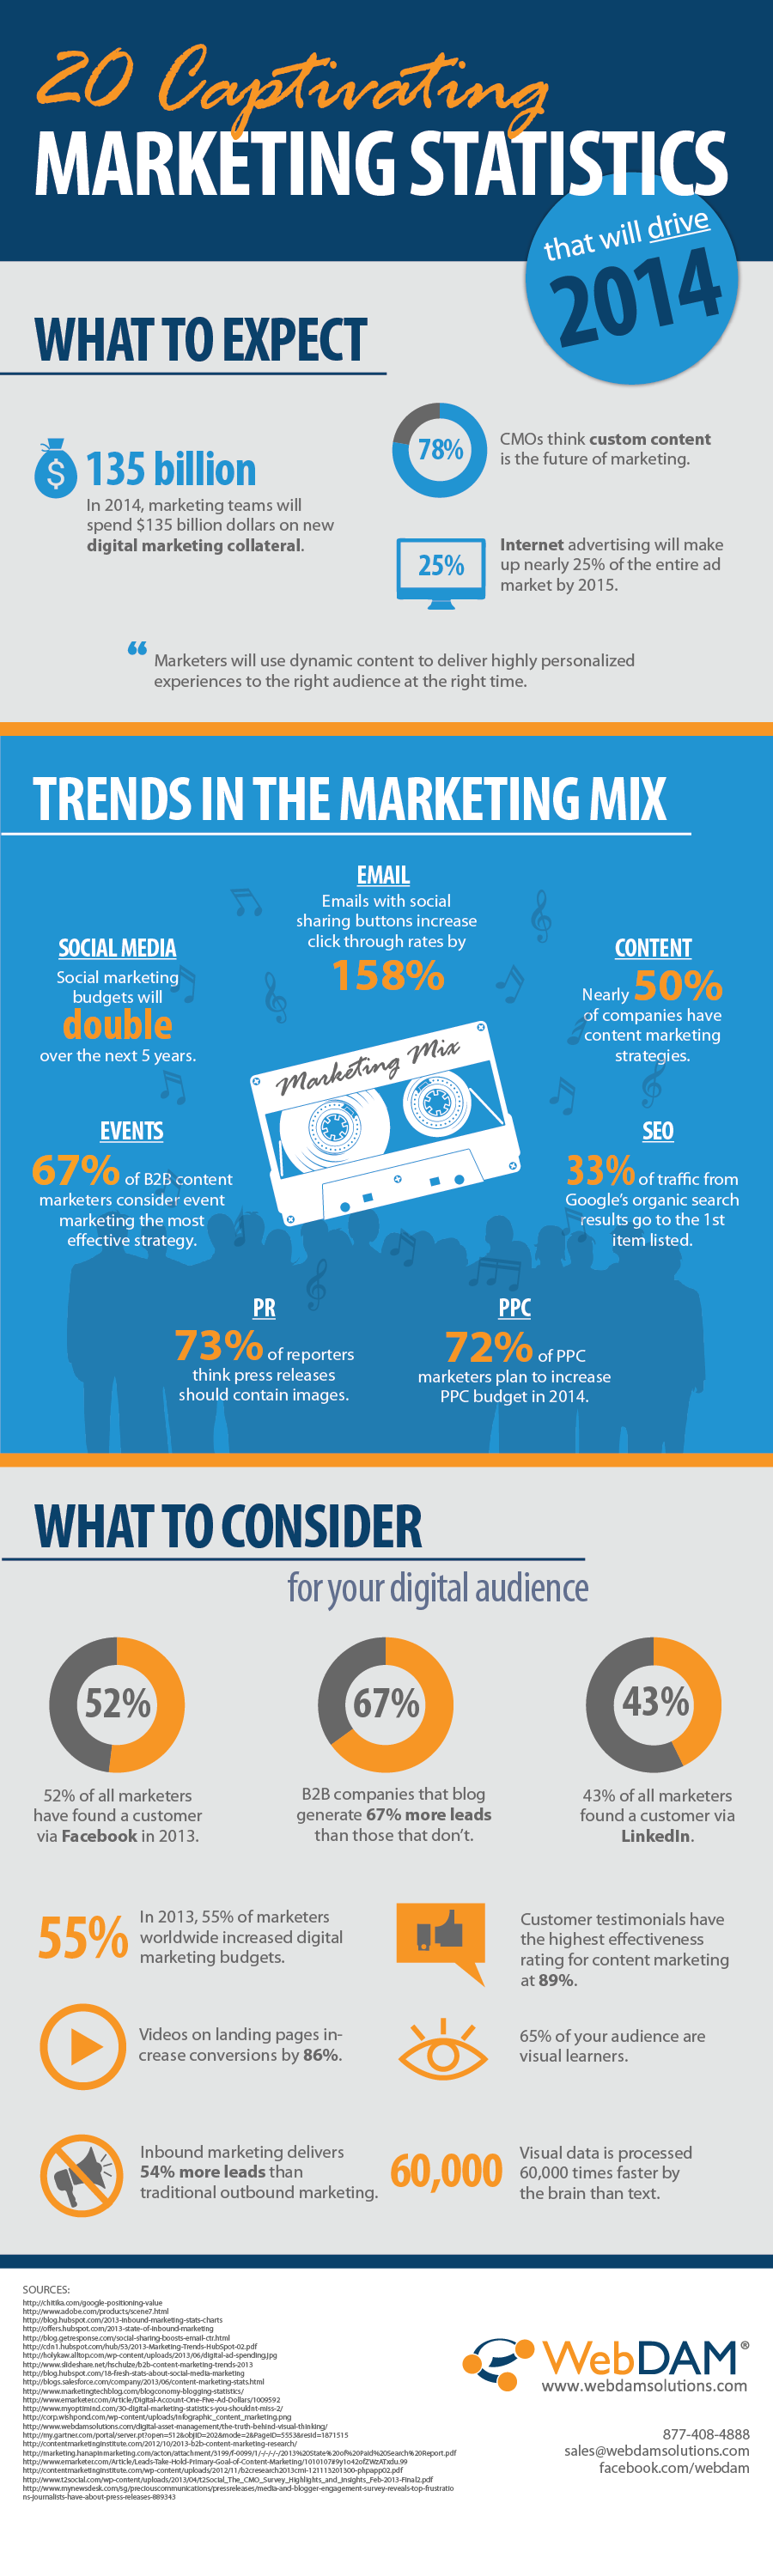 2014 Marketing Statistics Infographic